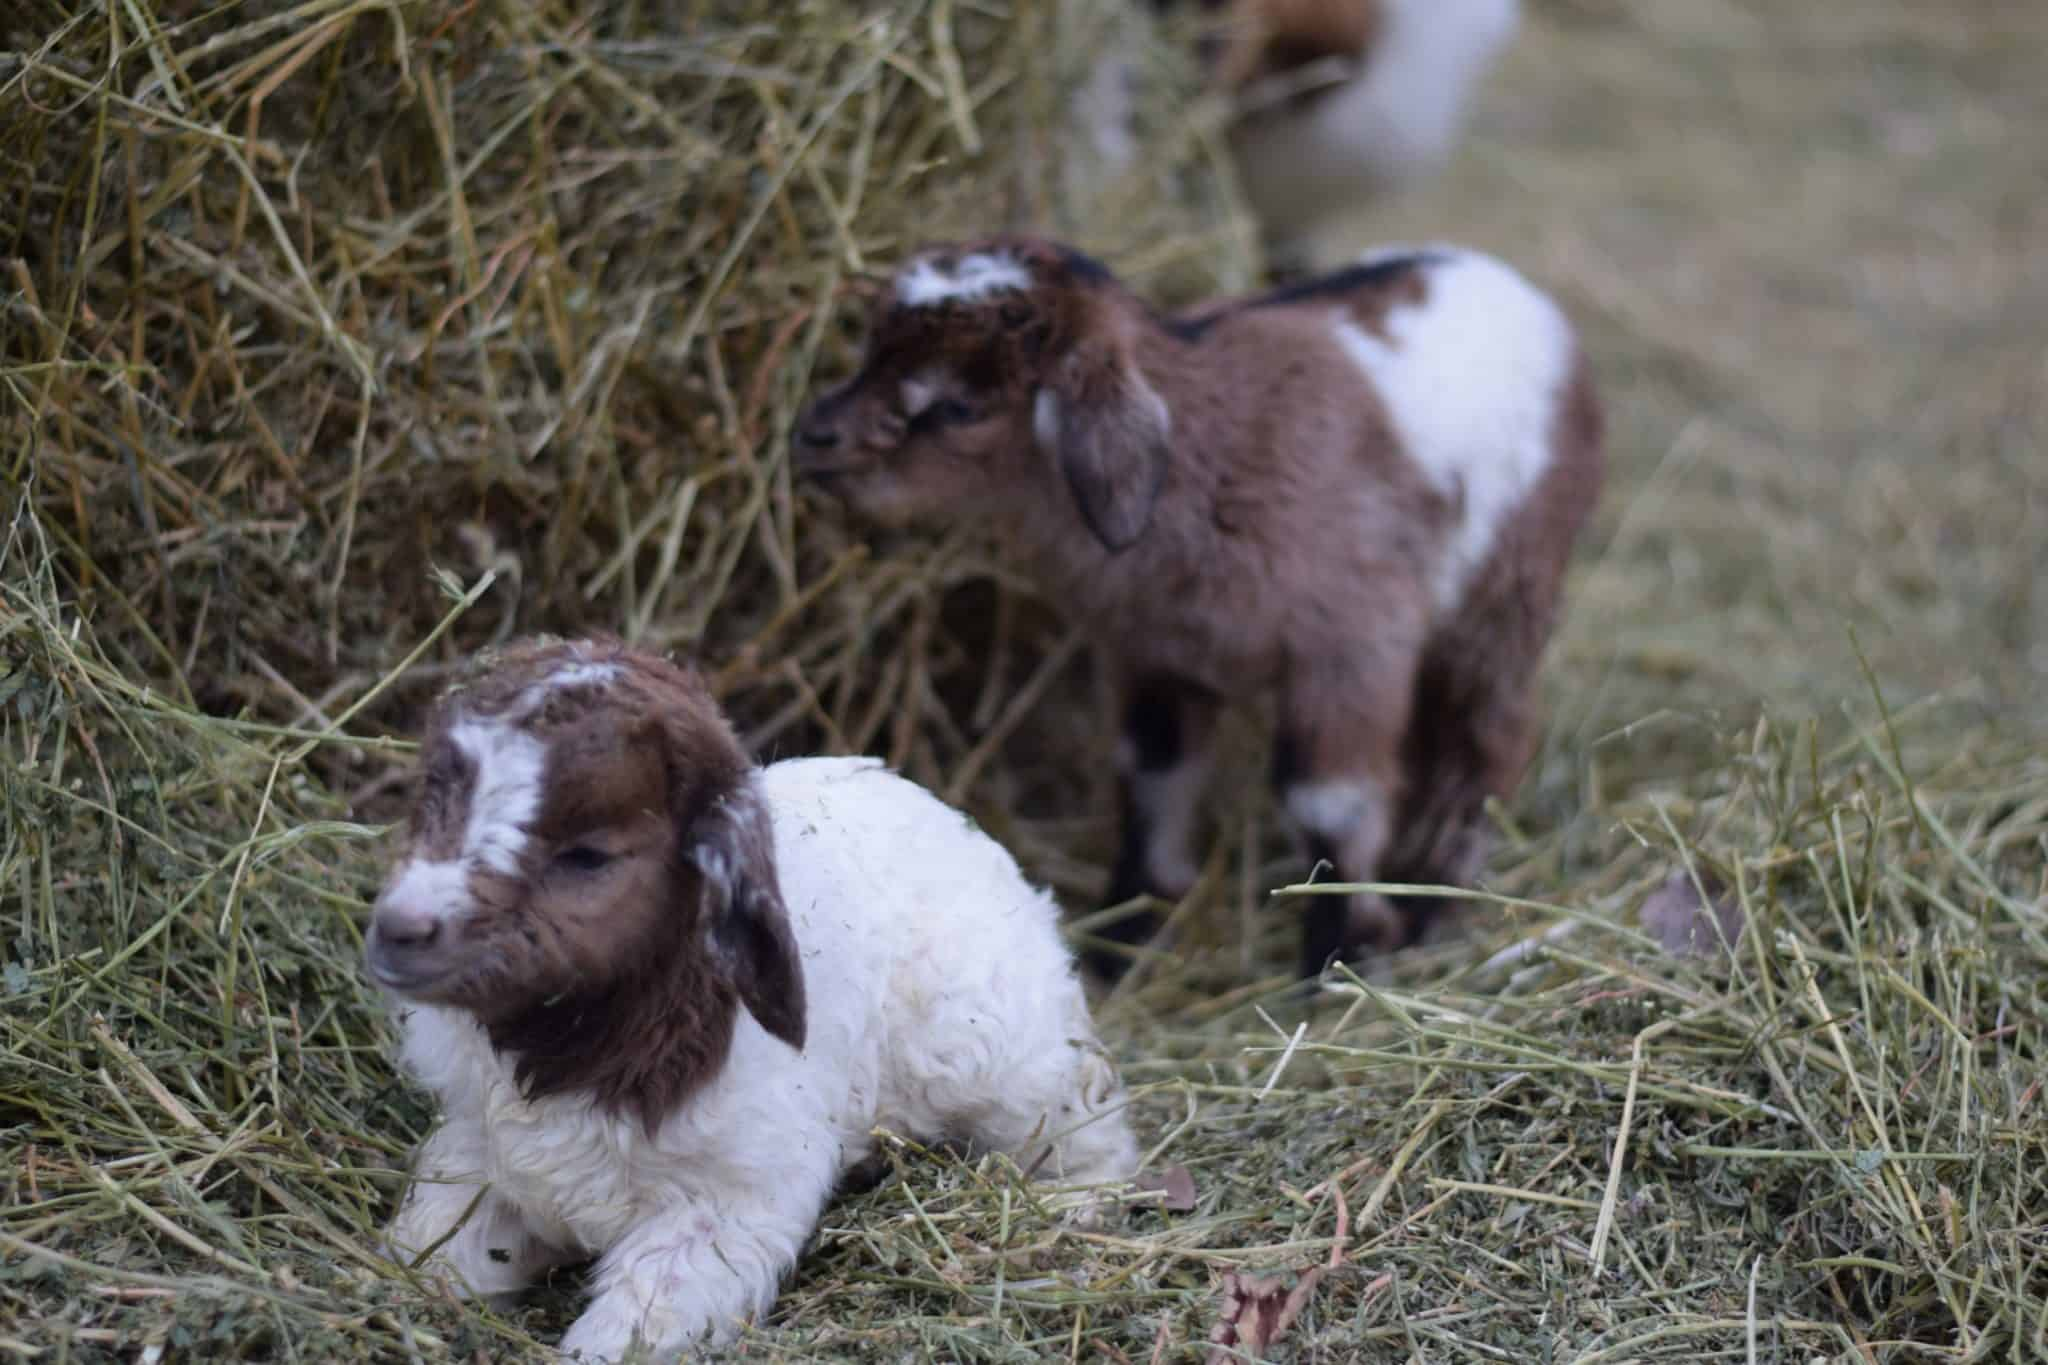 two newborn baby goats standing in a pile of hay